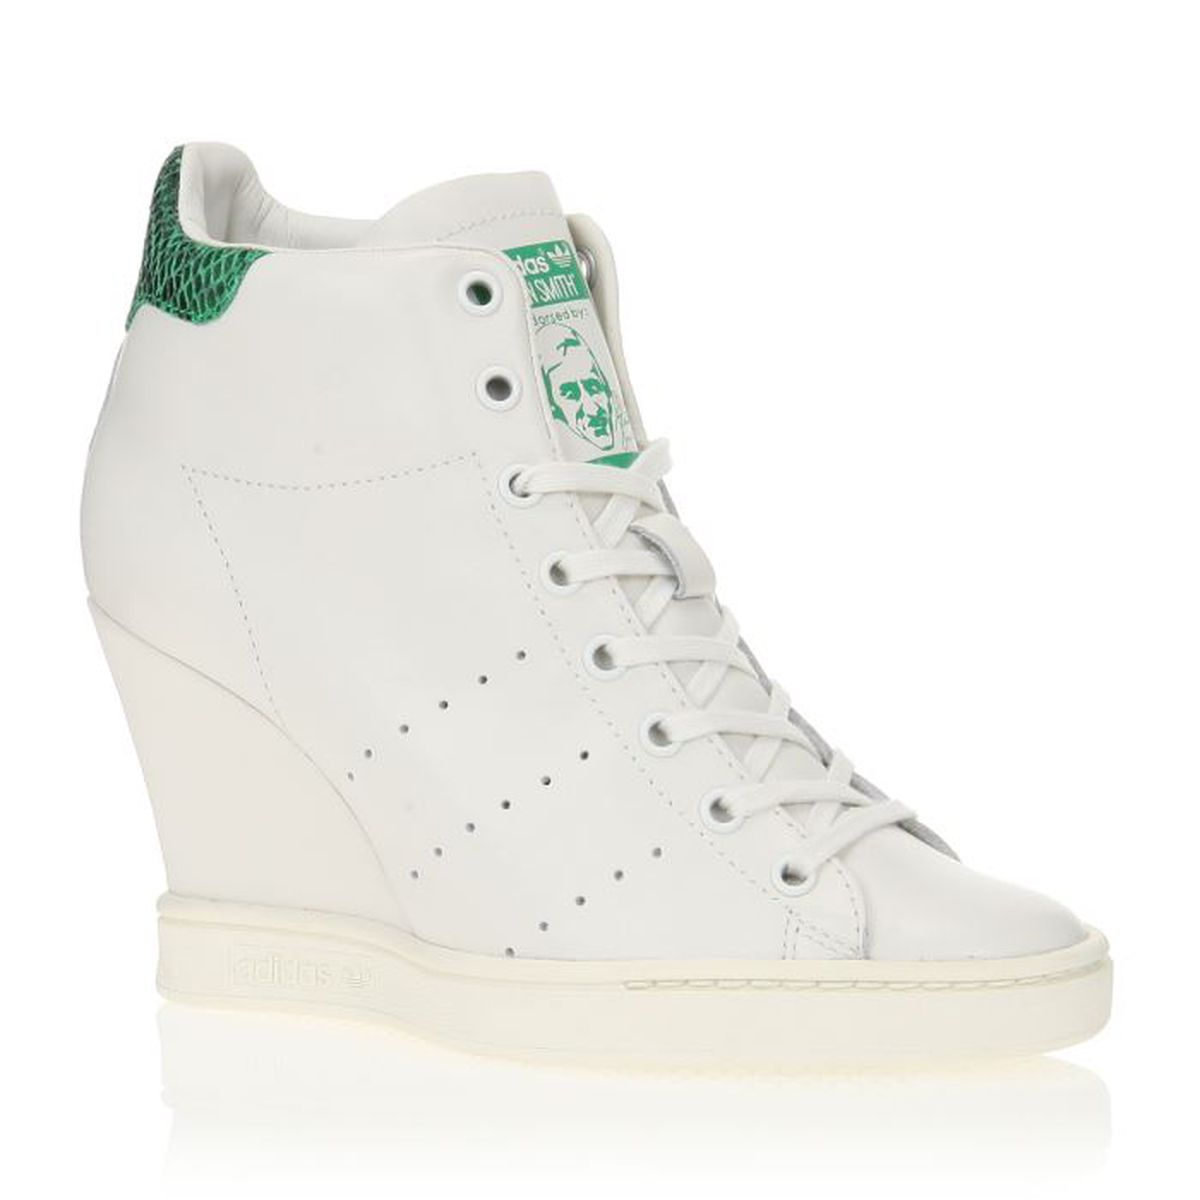 adidas originals baskets stan smith up ef w femme femme blanc et vert achat vente adidas. Black Bedroom Furniture Sets. Home Design Ideas